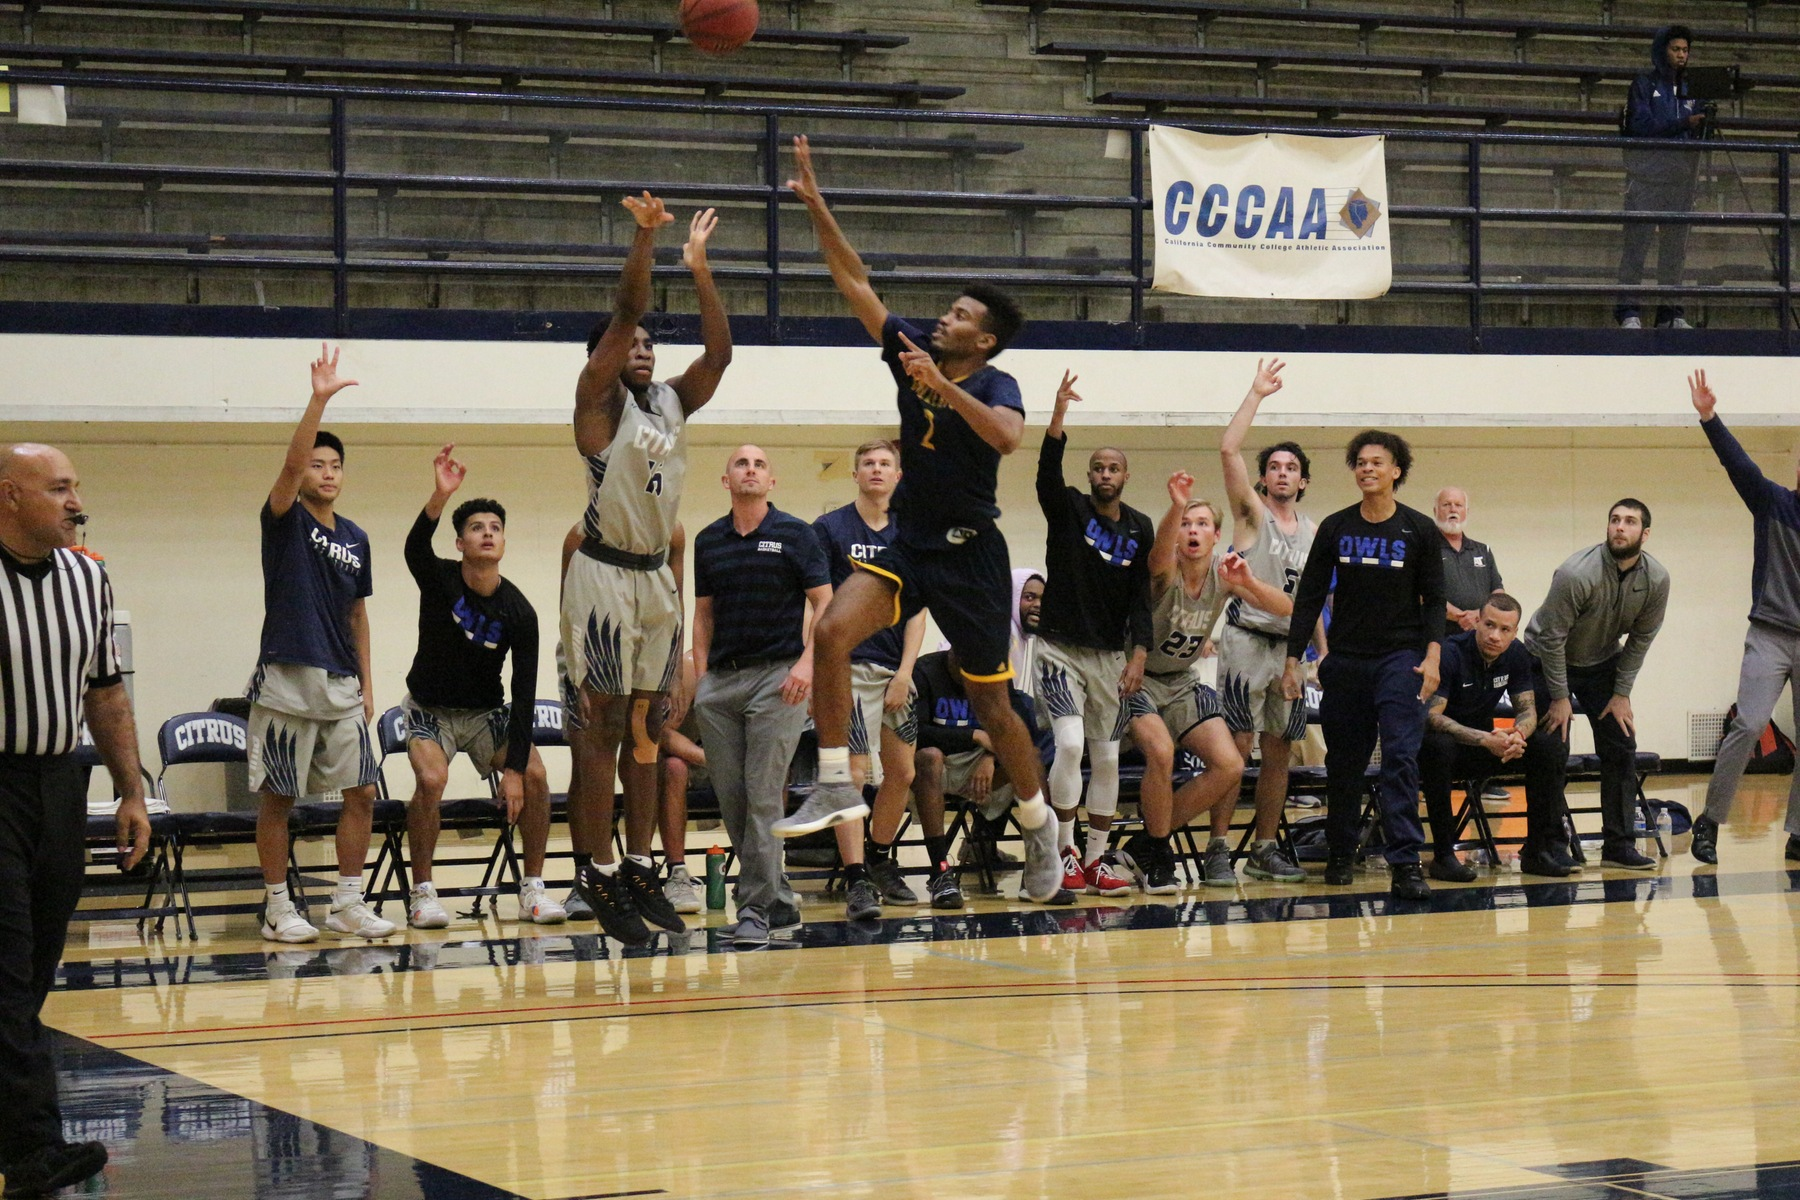 Psalm Maduakor lights up a three pointer, much to the pleasure of his teammates. Image: Andrew Wheeler